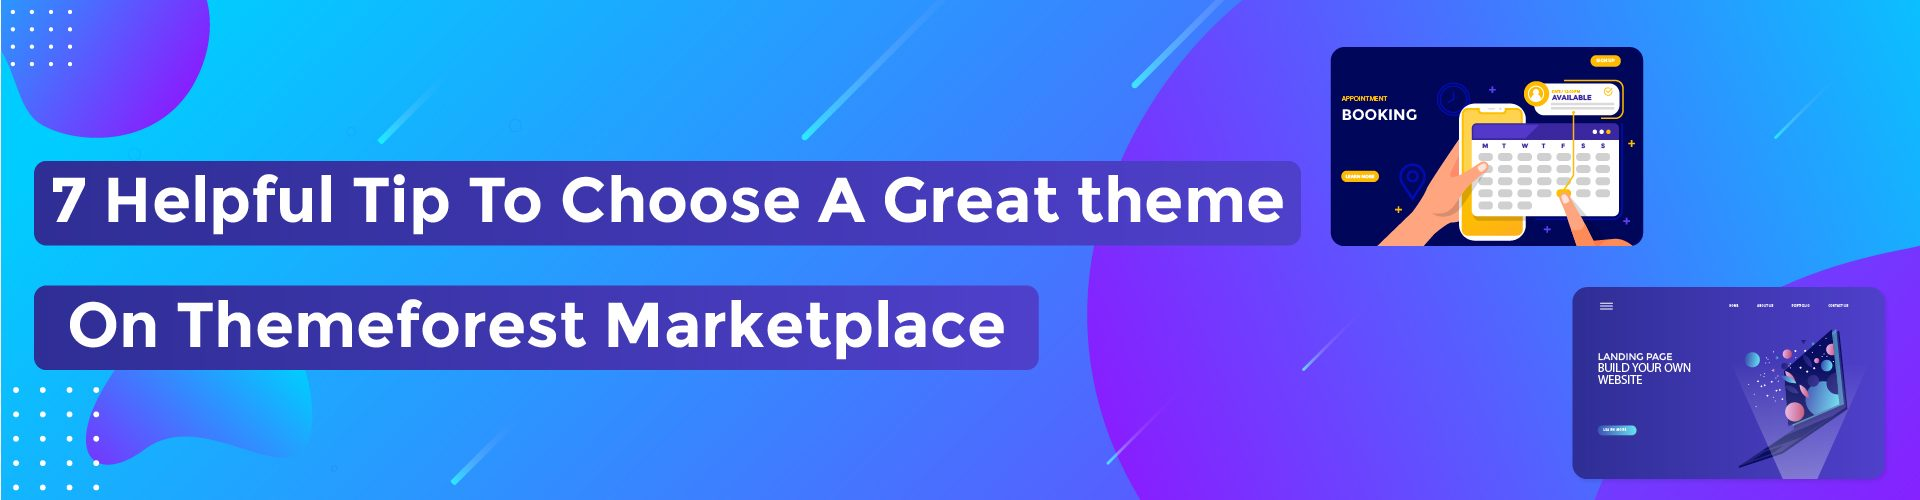 7 Helpful Tips To Choose A Great Theme On Themeforest Marketplace